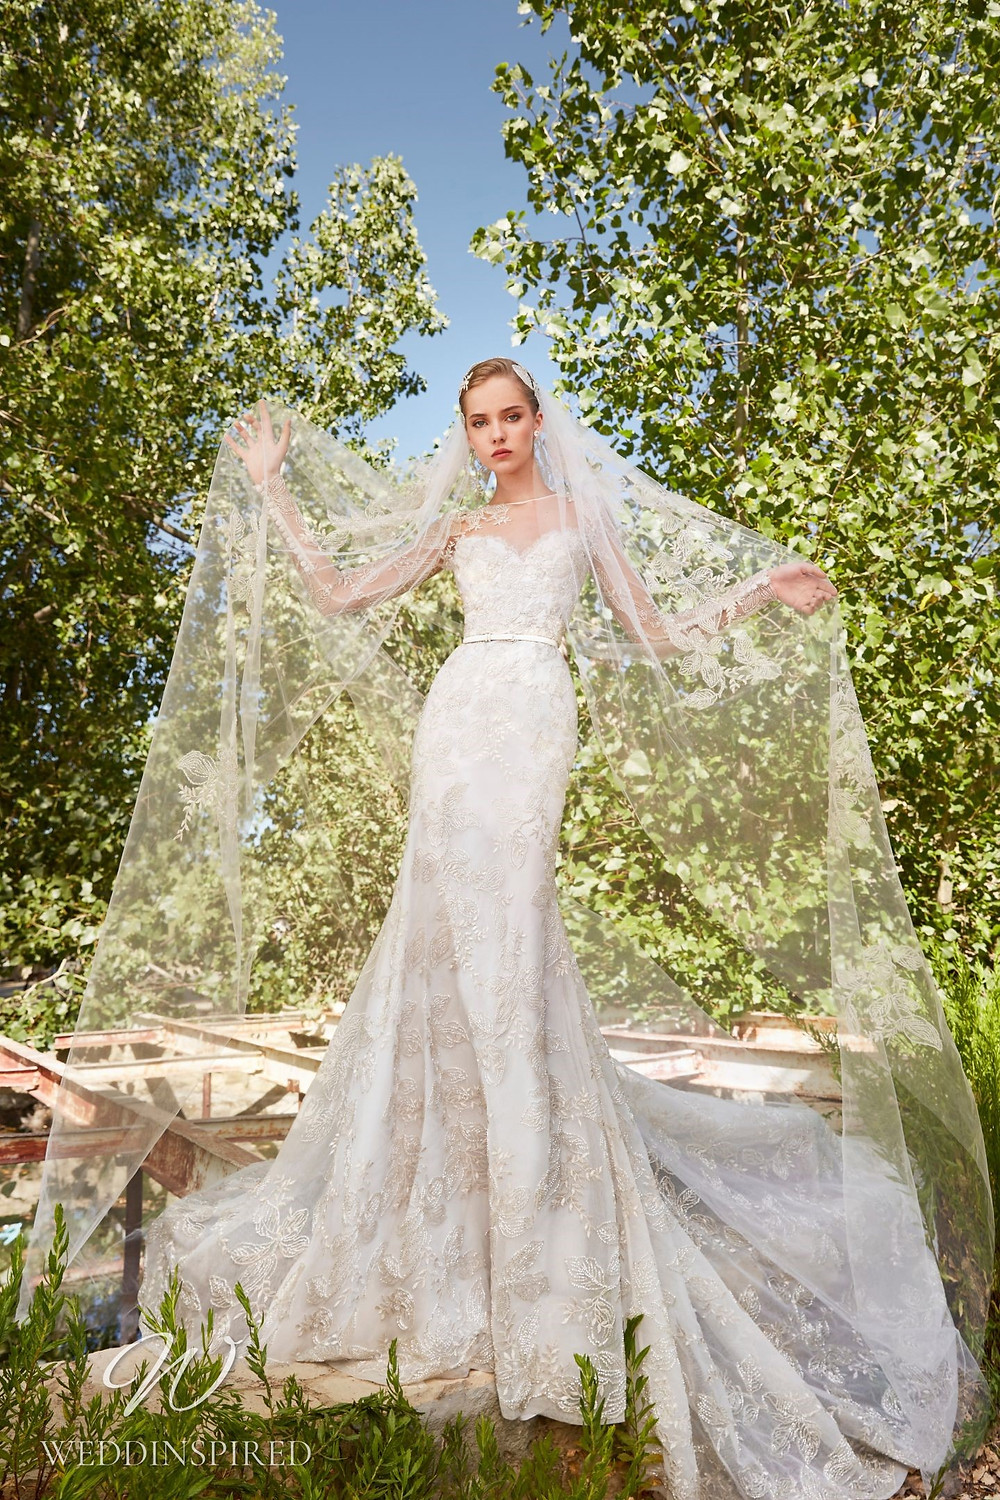 An Elie Saab Spring 2021 lace mermaid wedding dress with long illusion sleeves